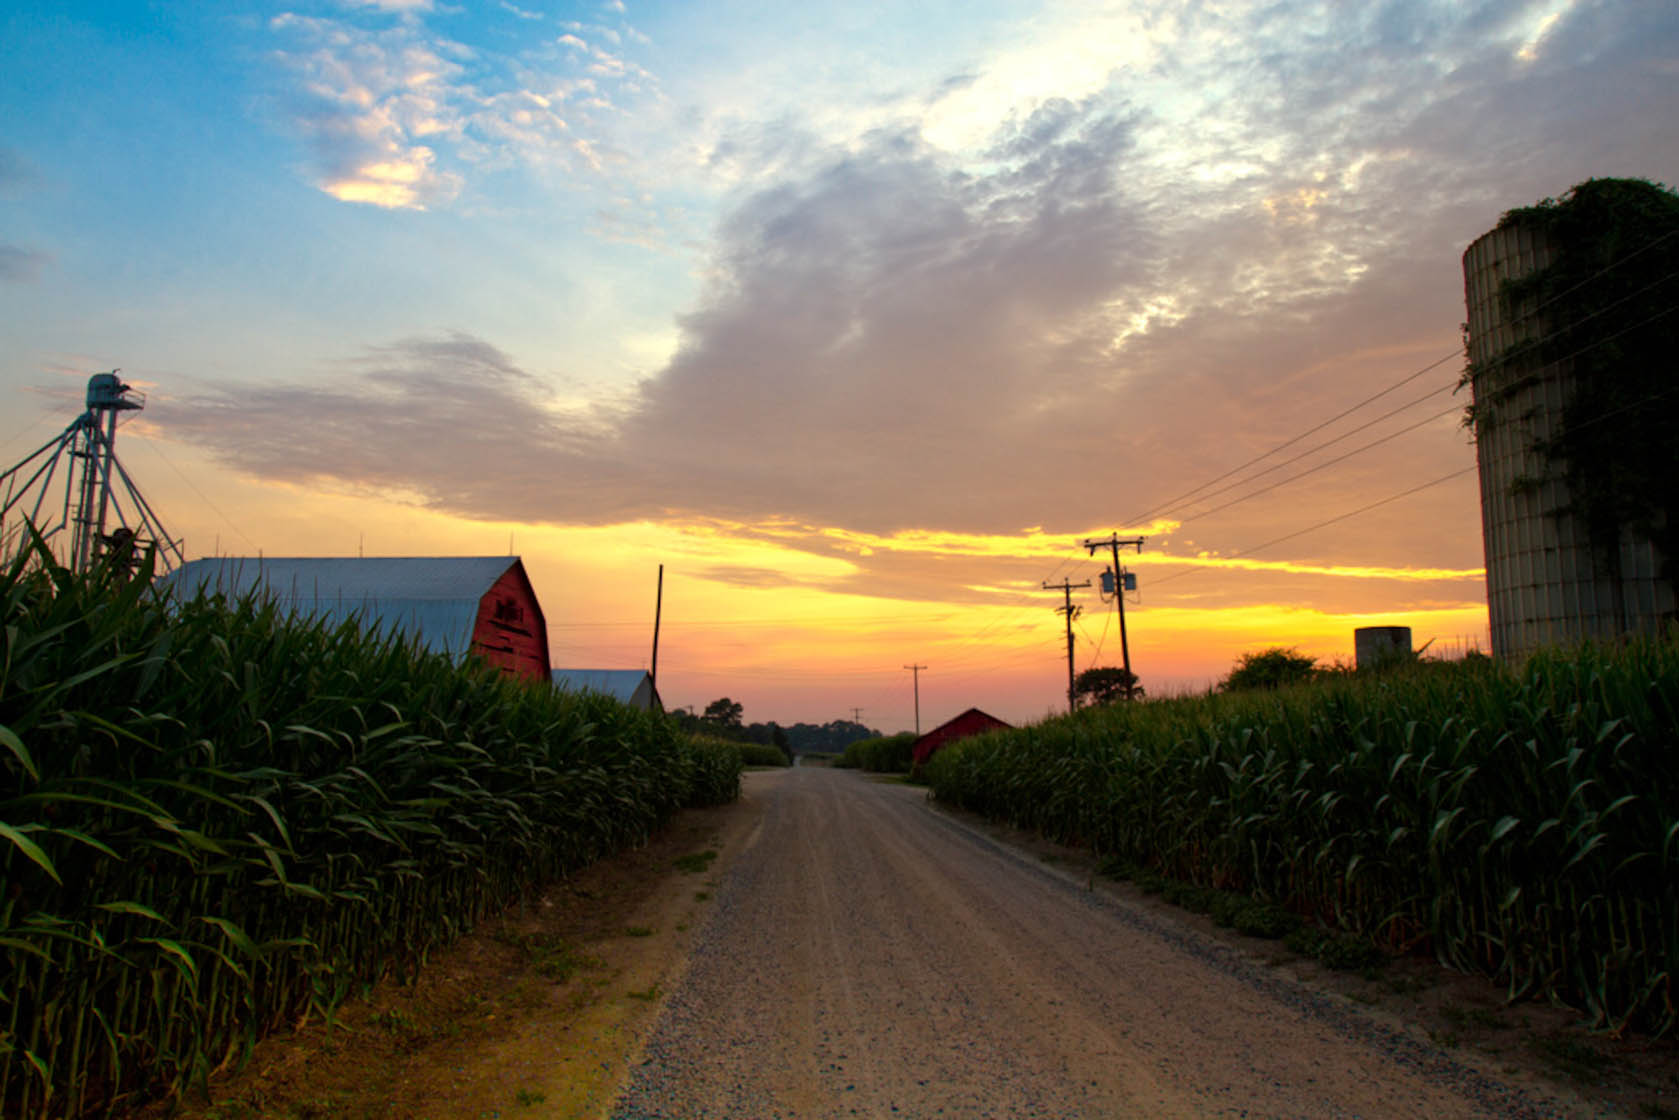 farm-field-road-between-barn-silos-sunset-980-3